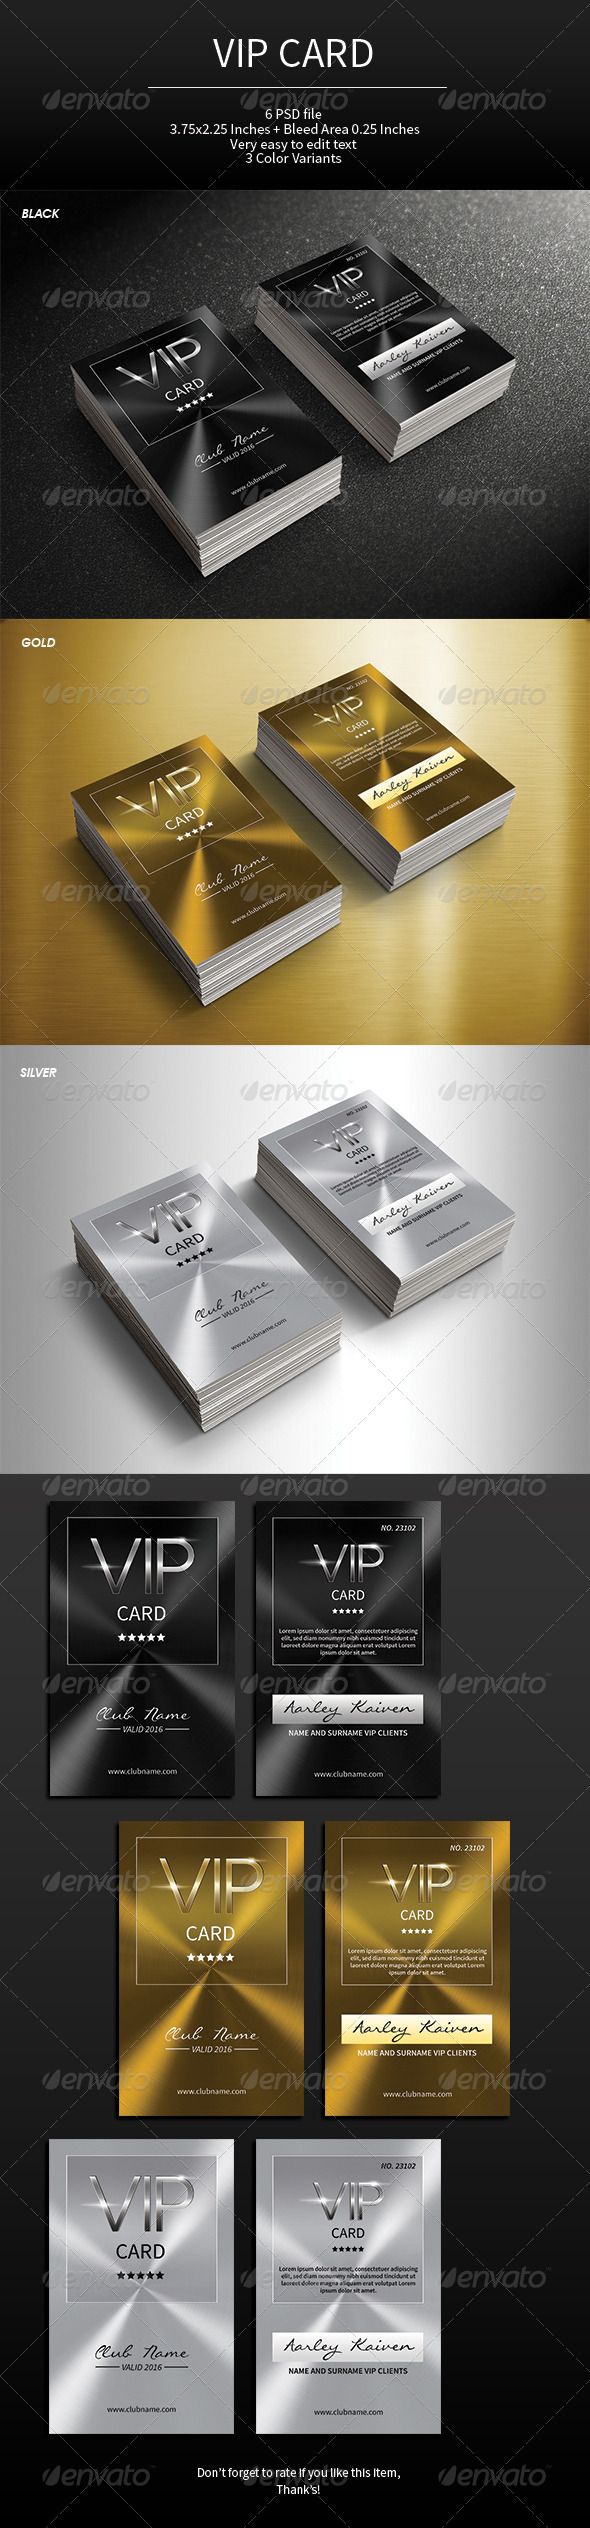 GraphicRiver VIP Card 7564143